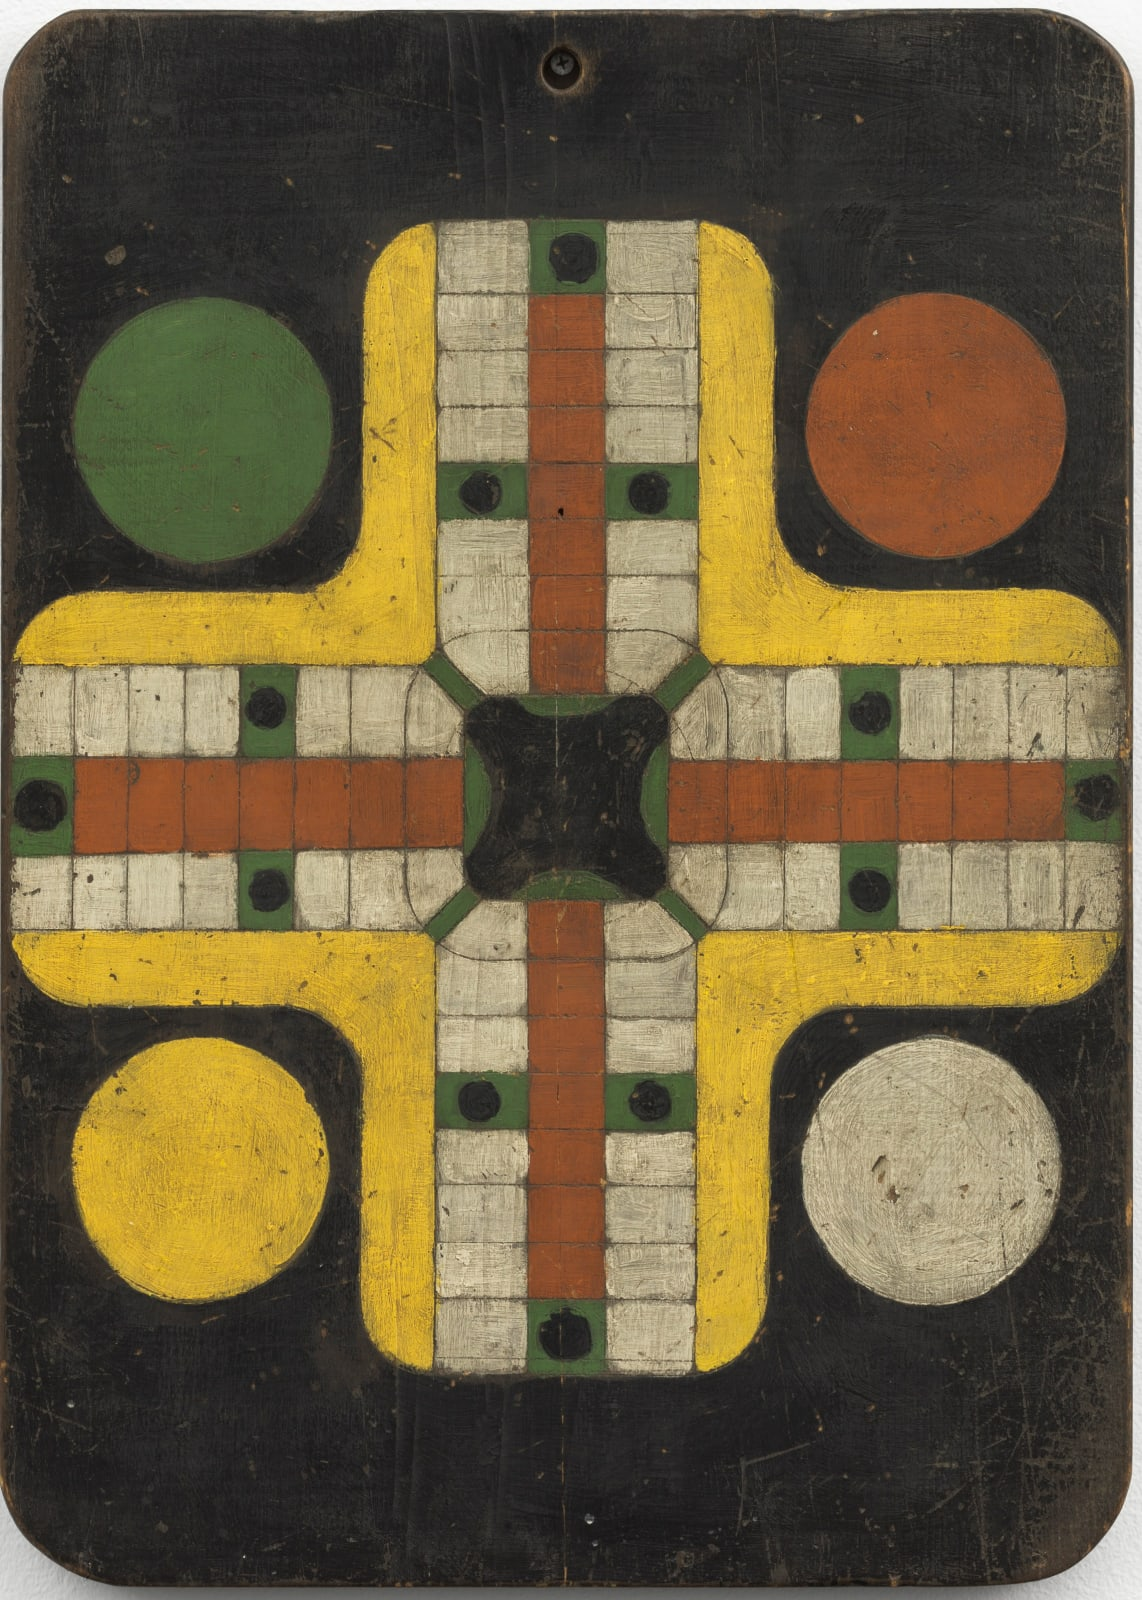 Parcheesi Game Board, c. 1920-30 Polychrome on wood 21 x 15 in. (AU 310)